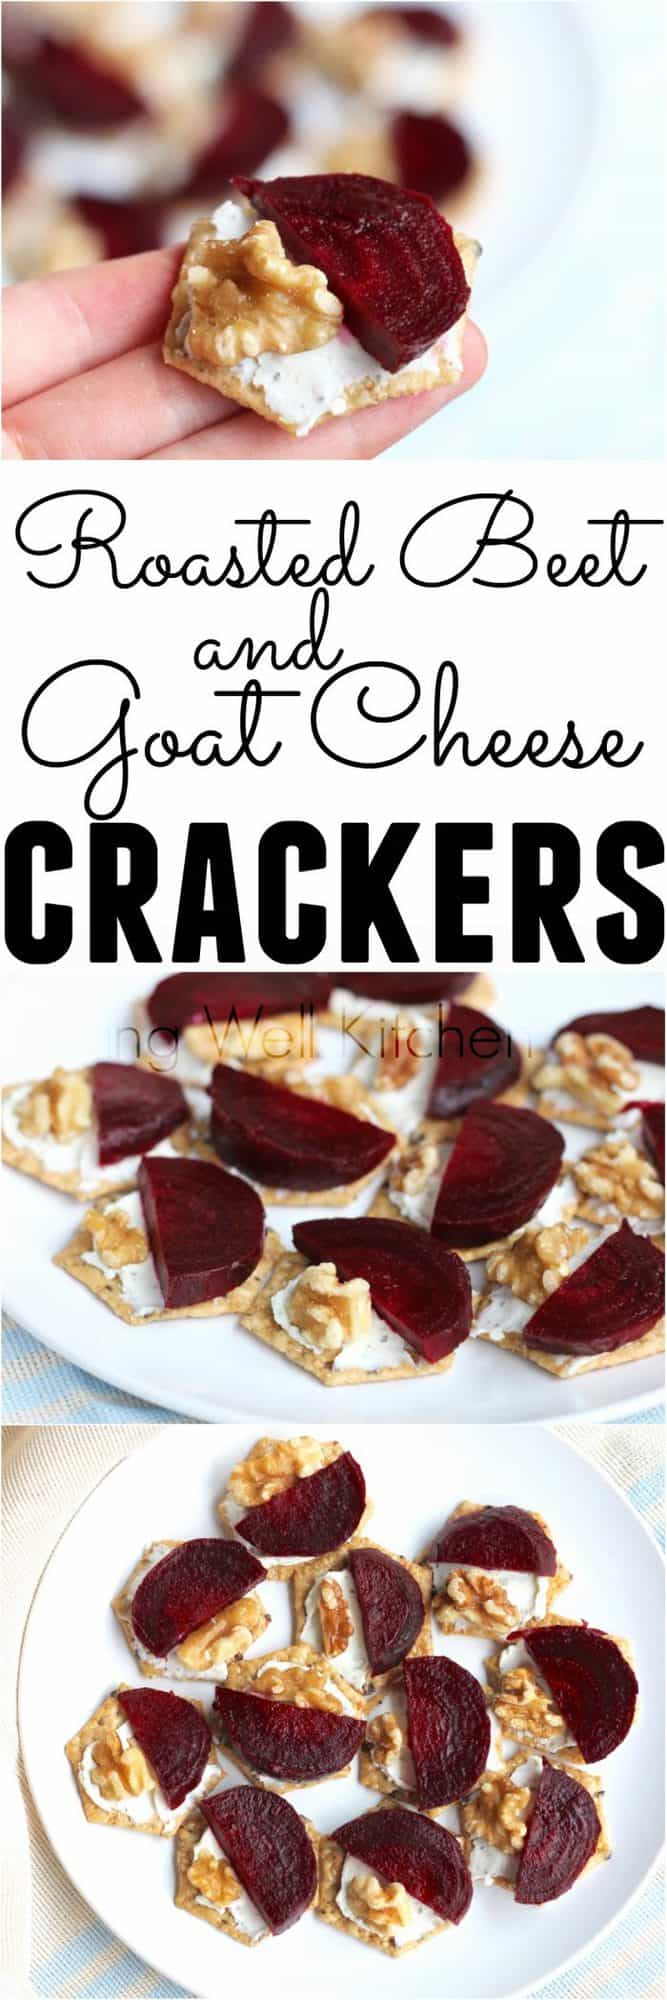 Only four ingredients needed for this easy, flavorful, and filling snack or appetizer that takes minutes to make thanks to pre-roasted beets. Roasted Beet and Goat Cheese Crackers from @memeinge